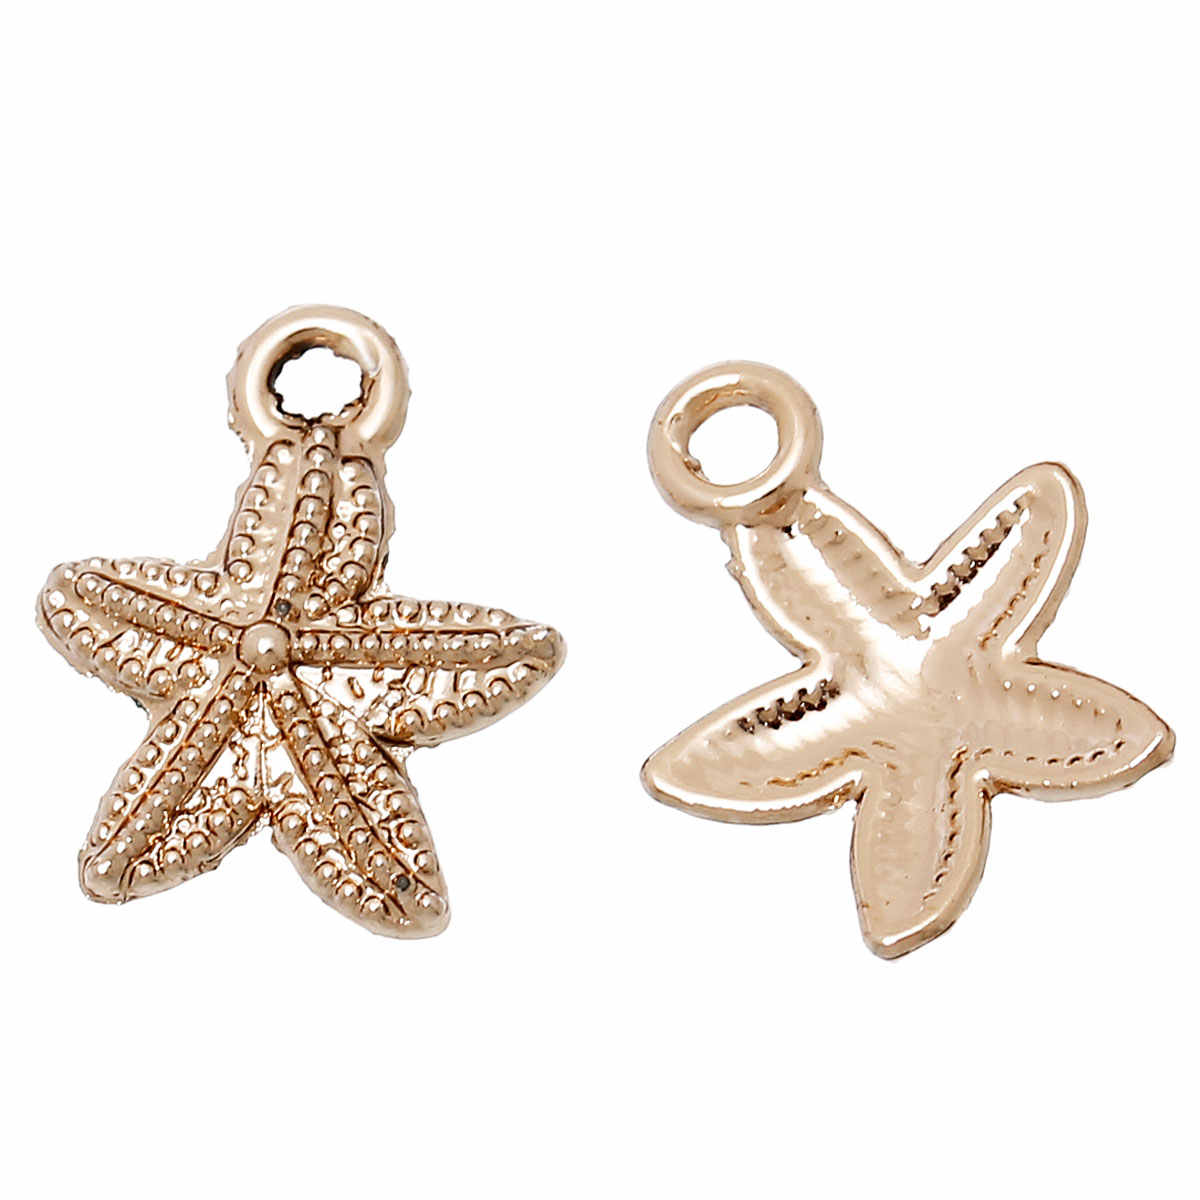 DoreenBeads New Fashion Golden Color Zinc alloy Starfish Charm Pendants DIY Earrings Necklace Jewelry Gift 15mm x 12mm, 2 Pieces